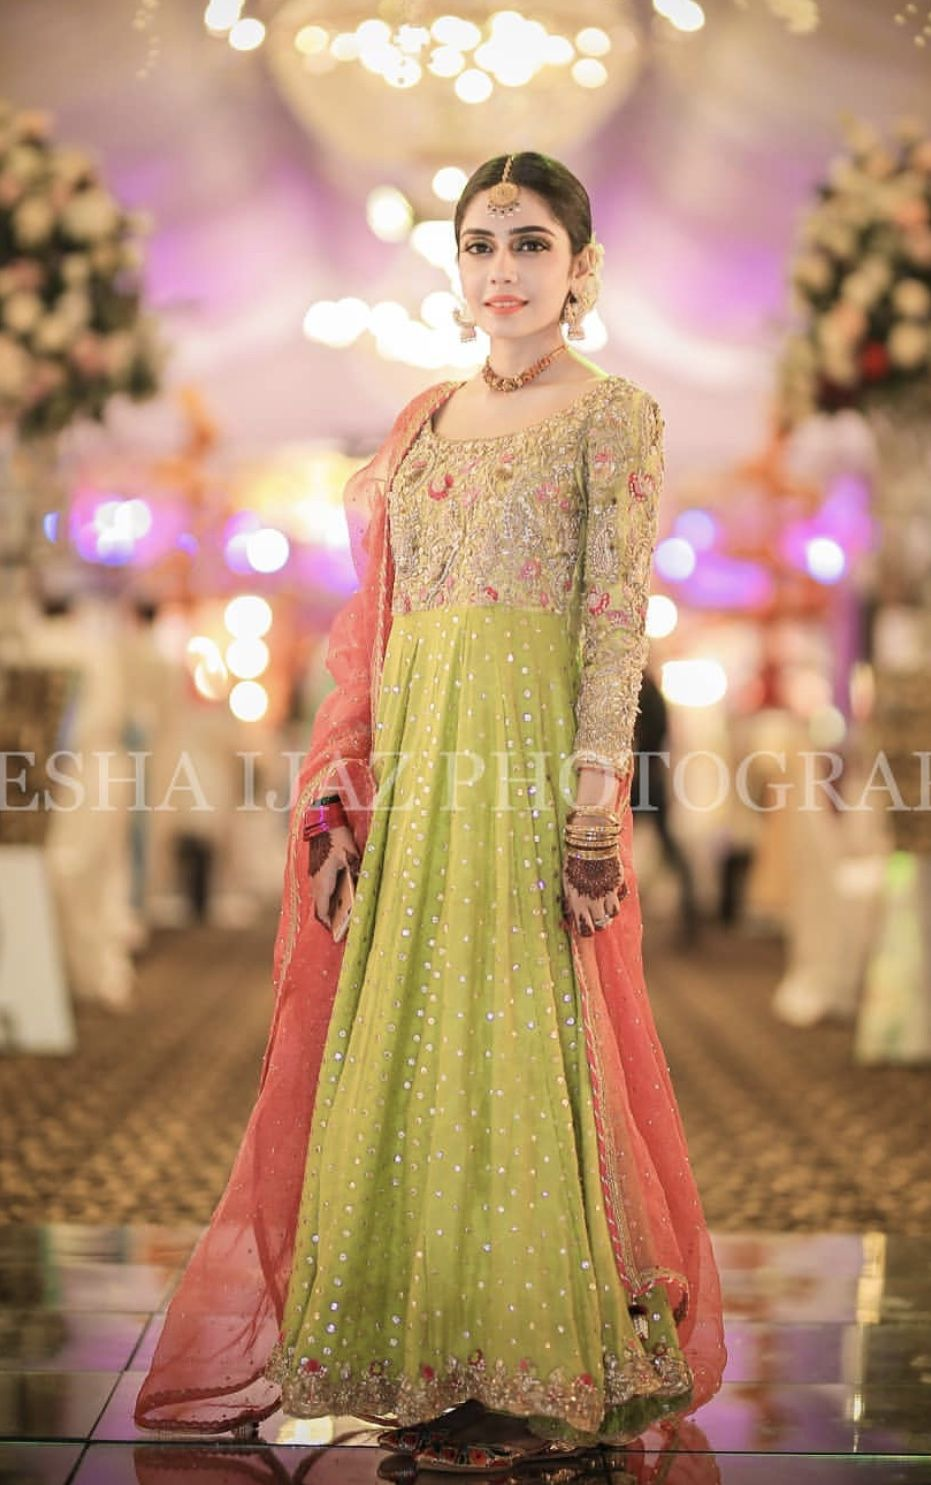 ac5fe30f37 Grooms sister Mehndi dress inspo | Fashion design in 2019 | Dresses ...